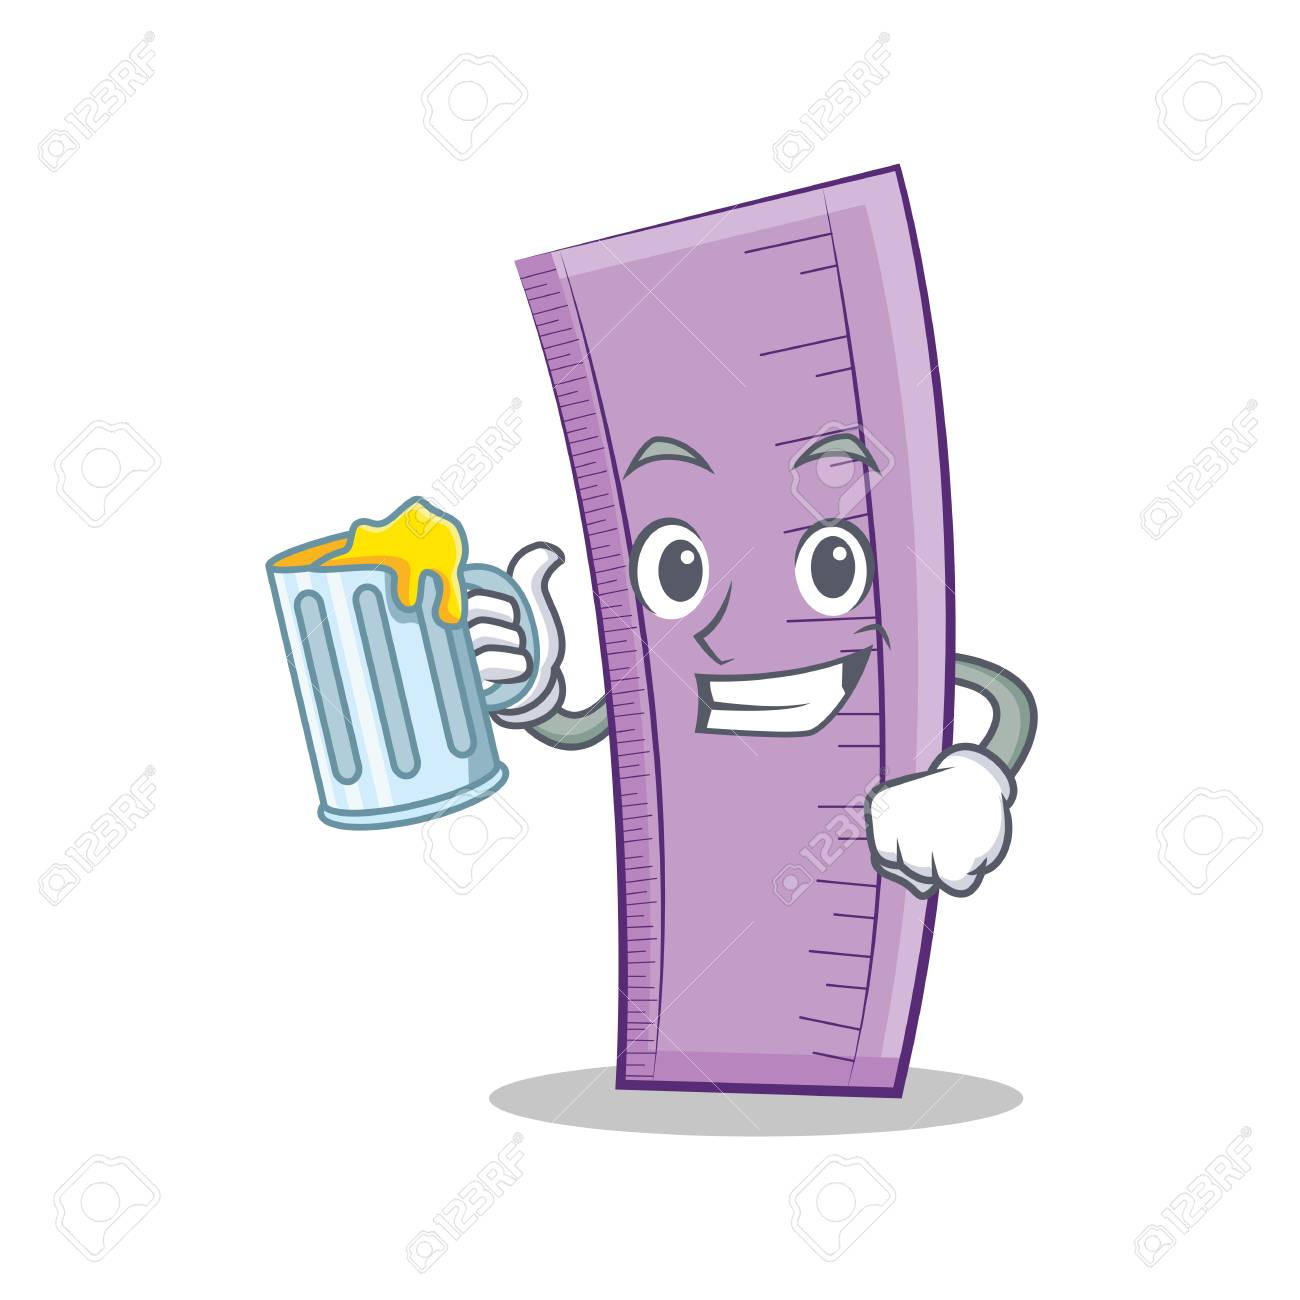 With juice ruler character cartoon style royalty free cliparts